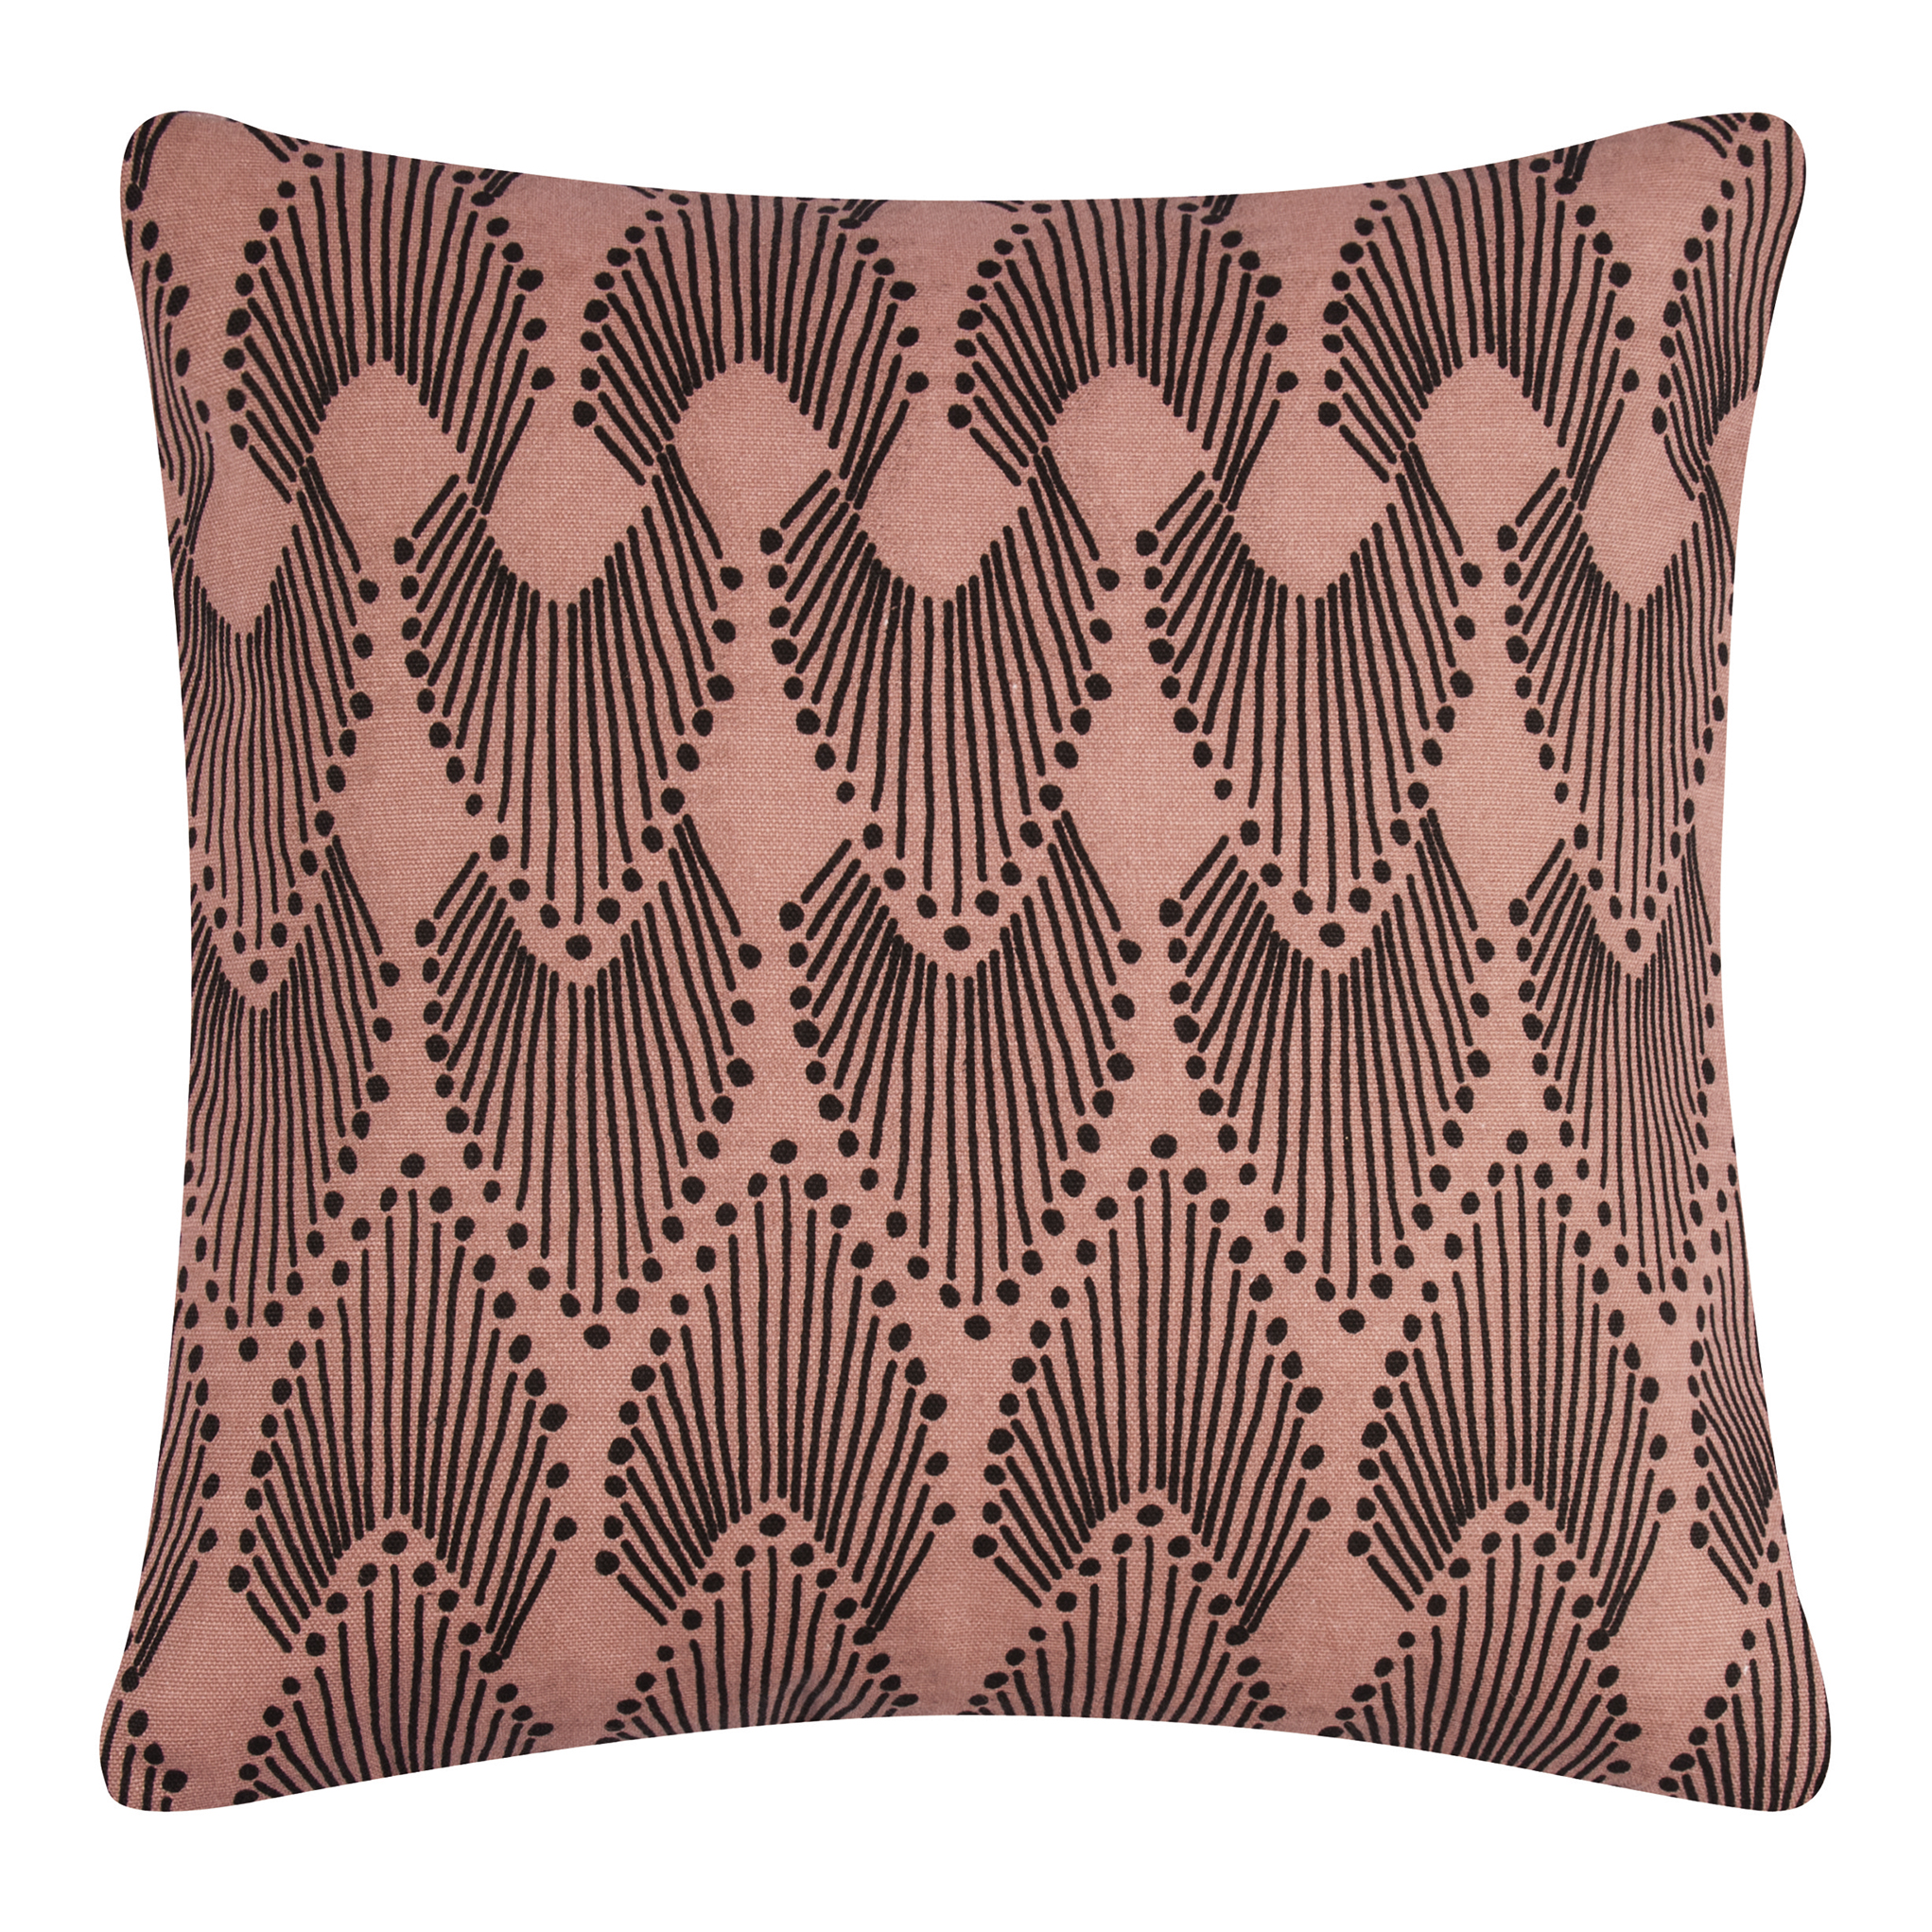 Kissenhülle - Flair Dusty Pink 40x40 - PAD home design